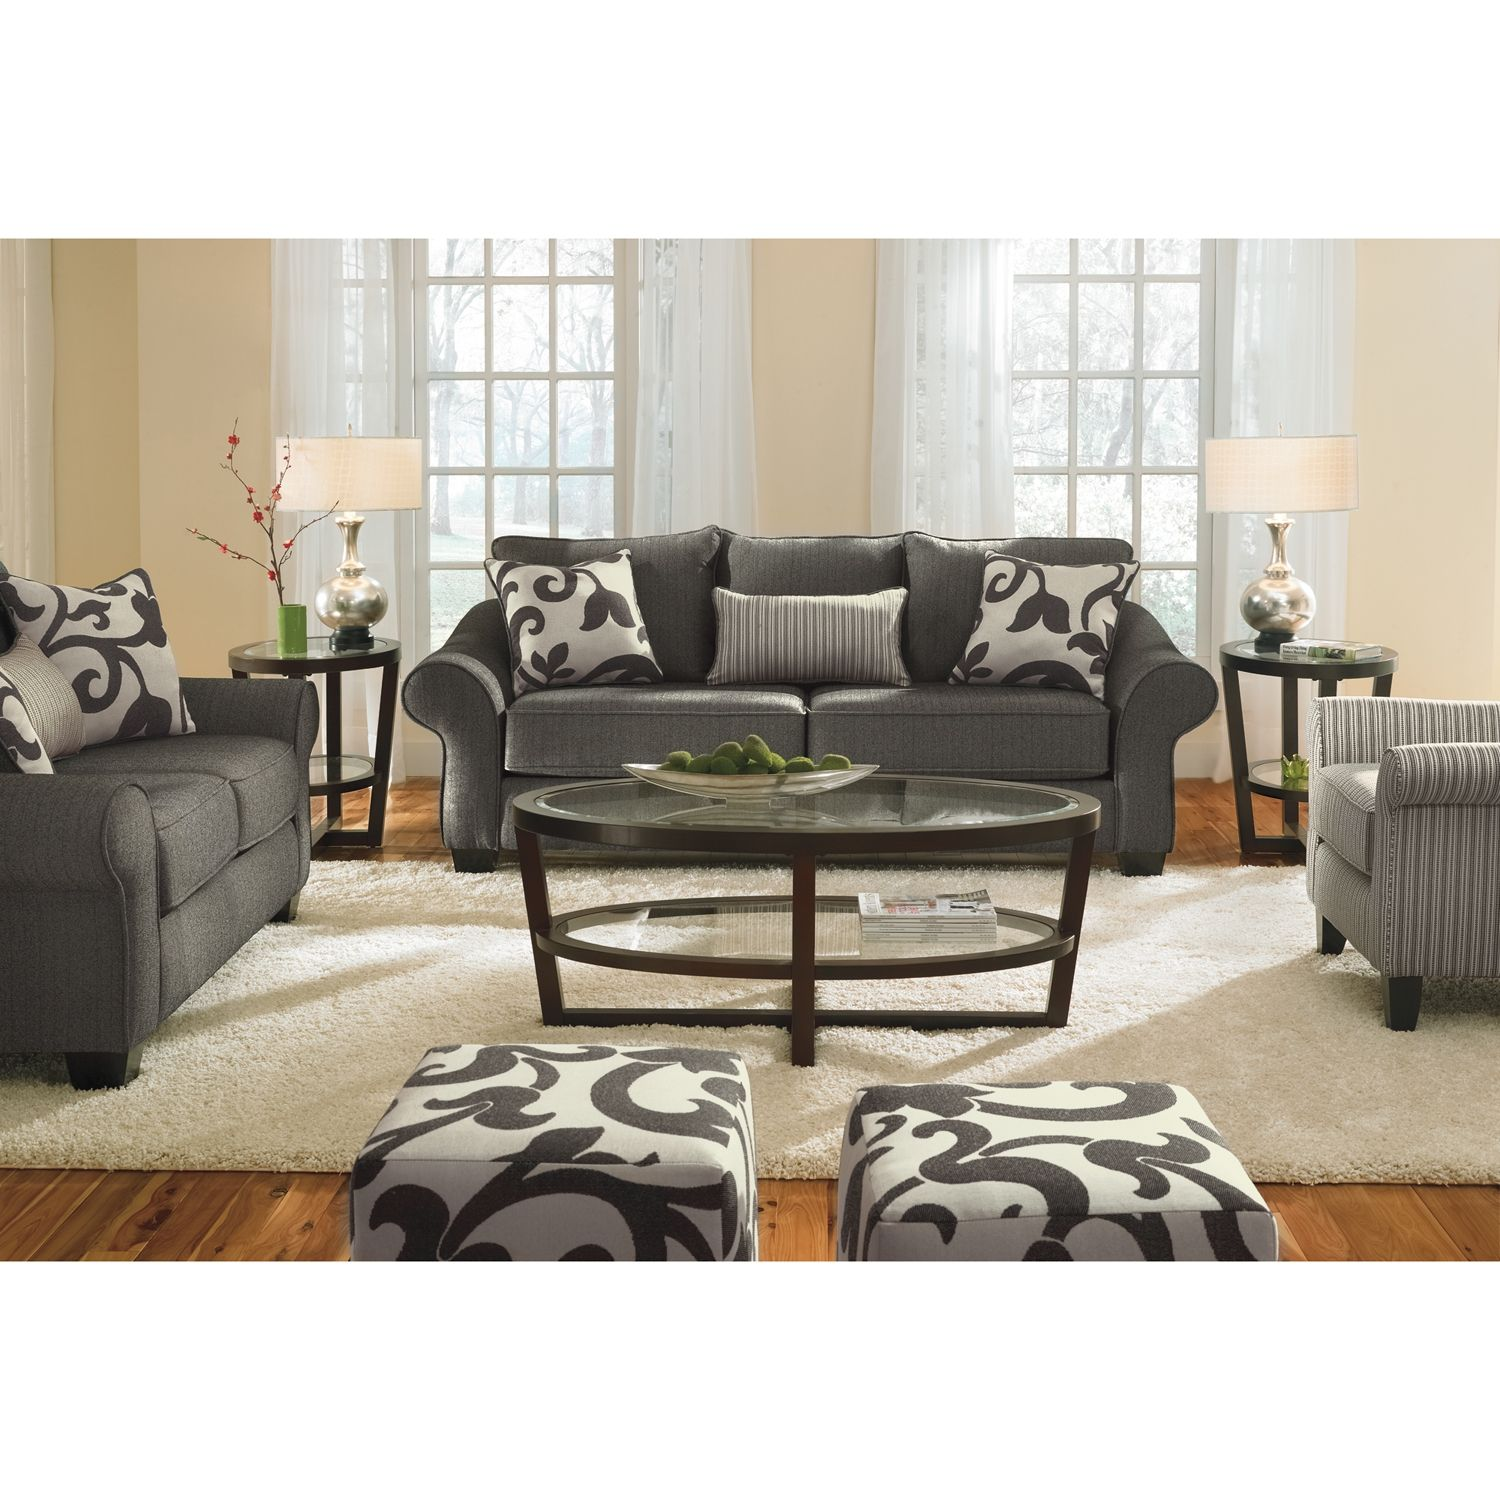 500 Colette Upholstery 3 Seat Gray Herringbone Sofa With Accent